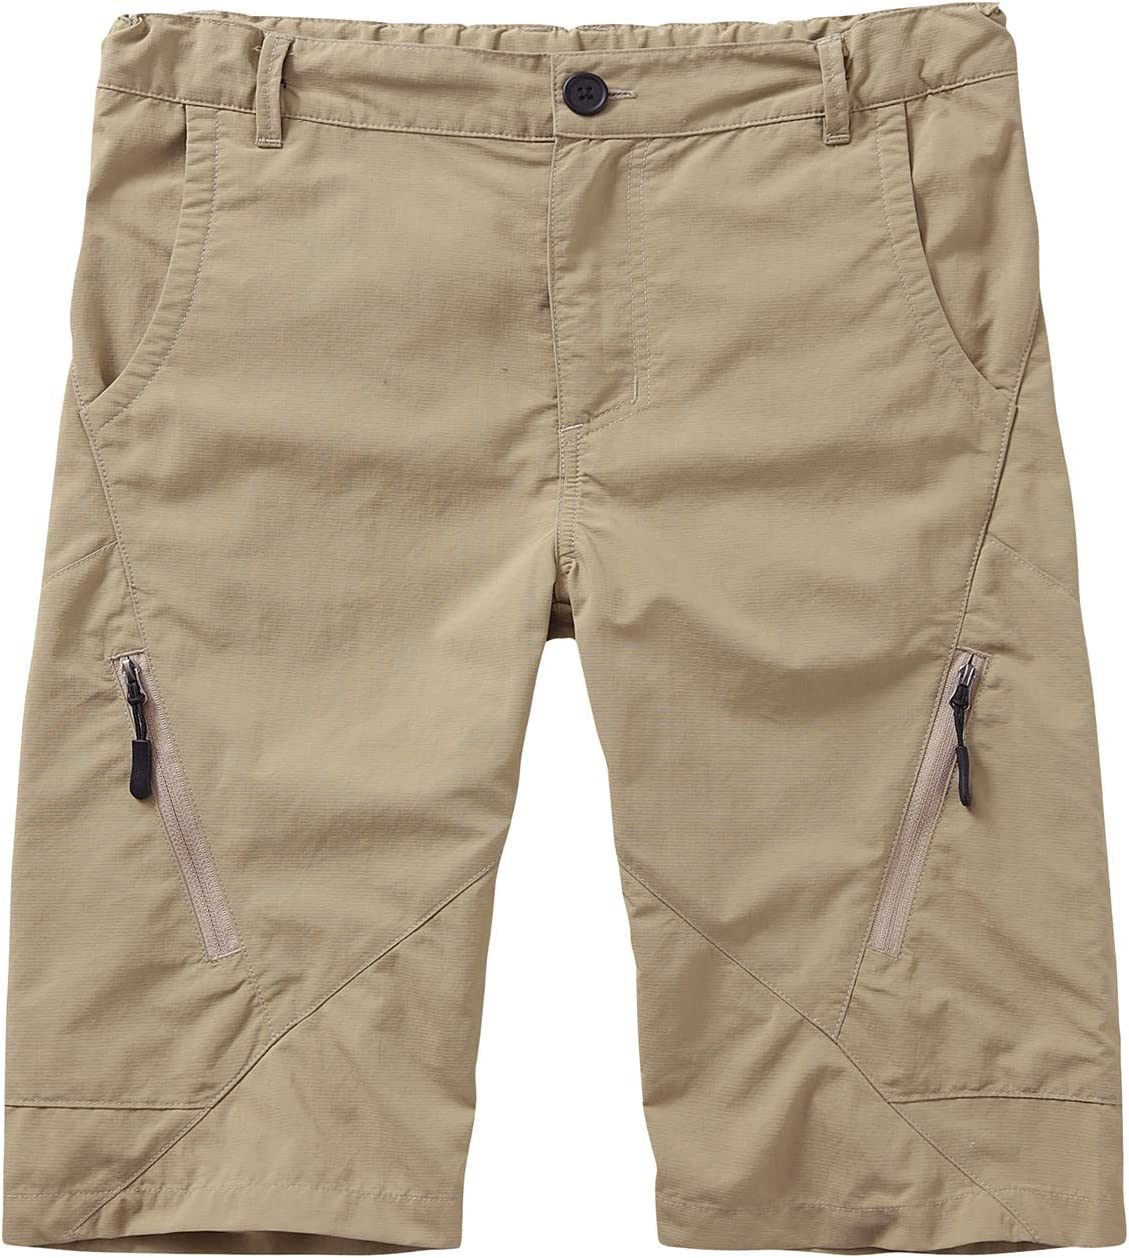 Asfixiado Kids Youth Cargo Shorts,Outdoor Camping Hiking Shorts, Lightweight Quick Dry Elastic Waist Athletic Short